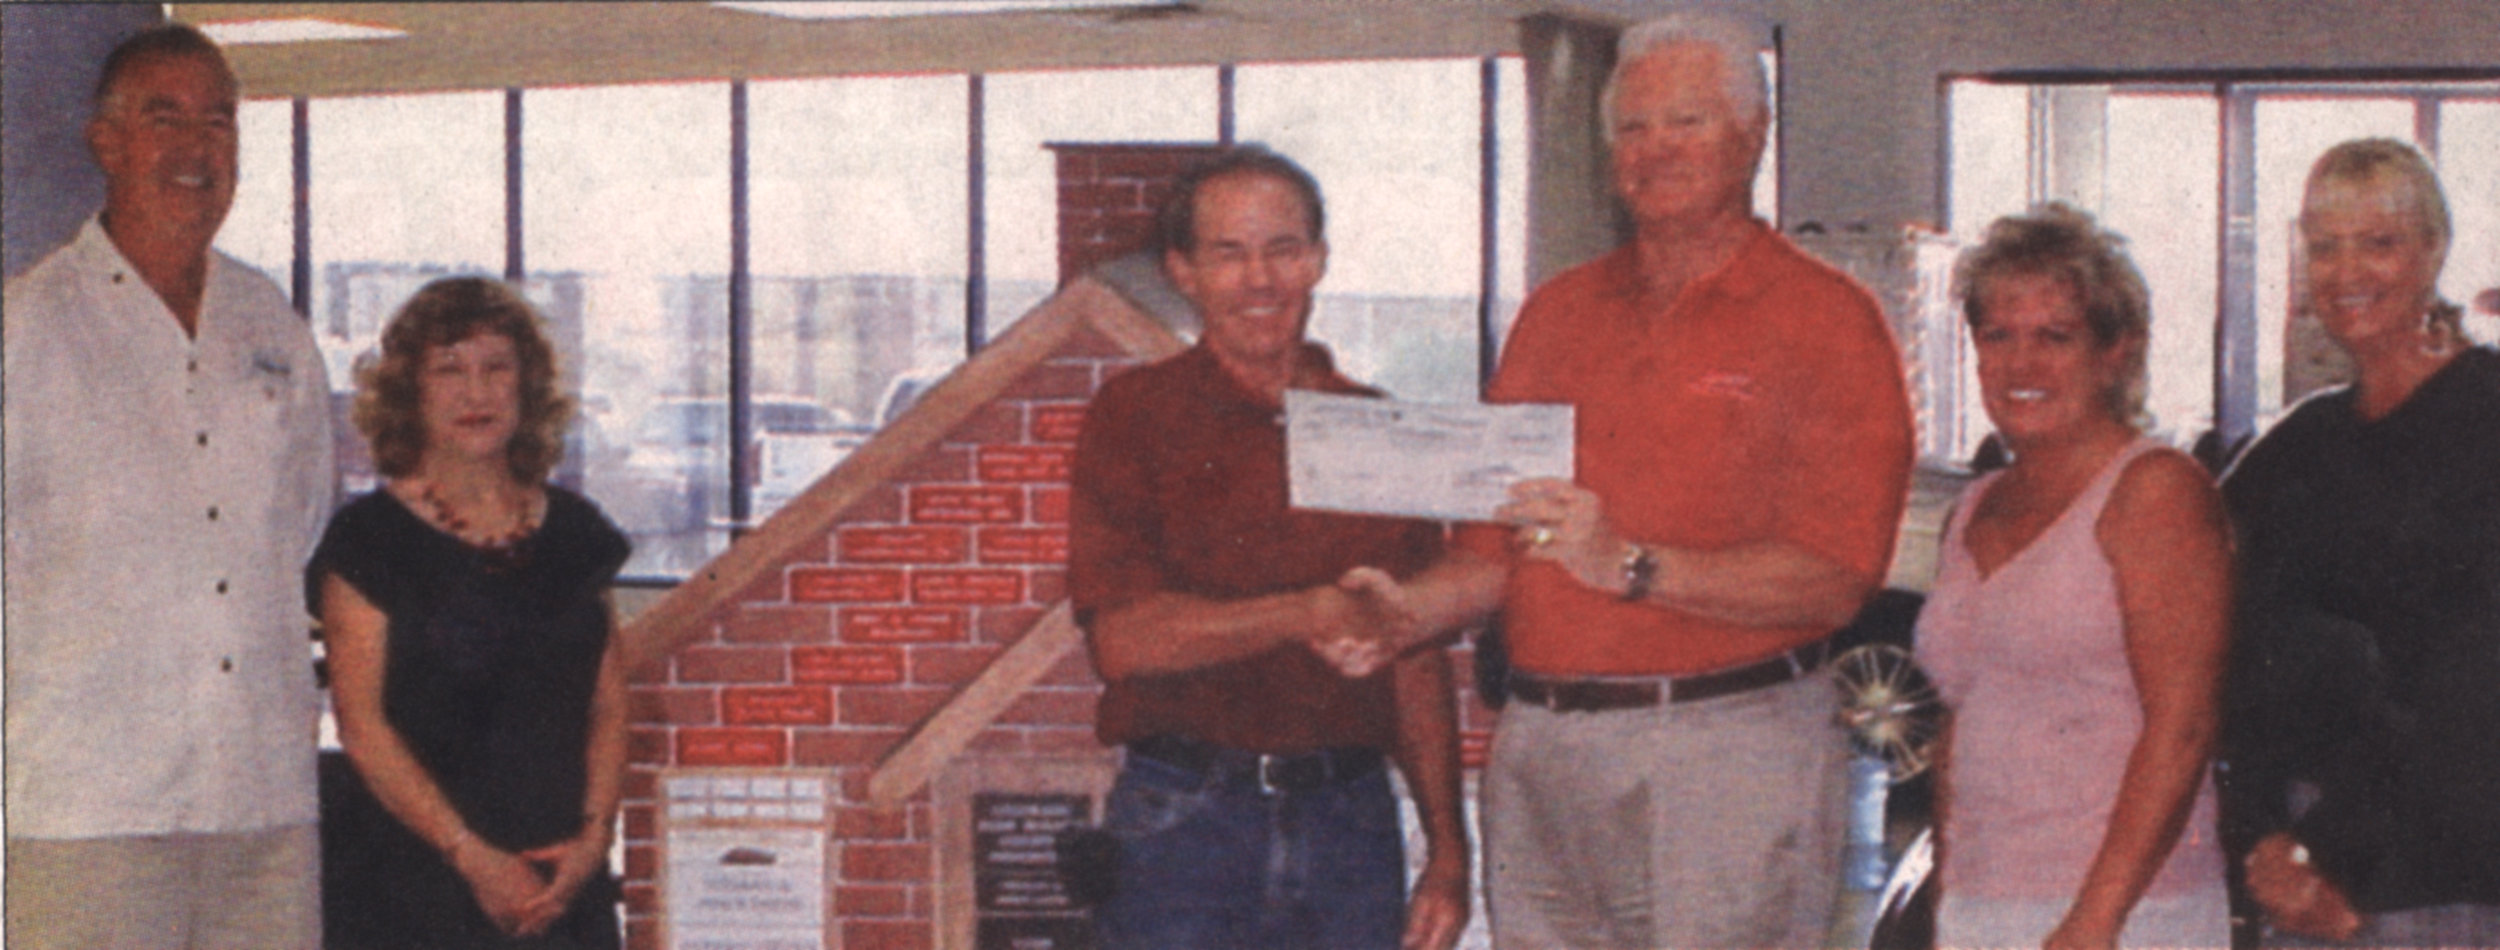 Anderson Auto Group Donation 2007